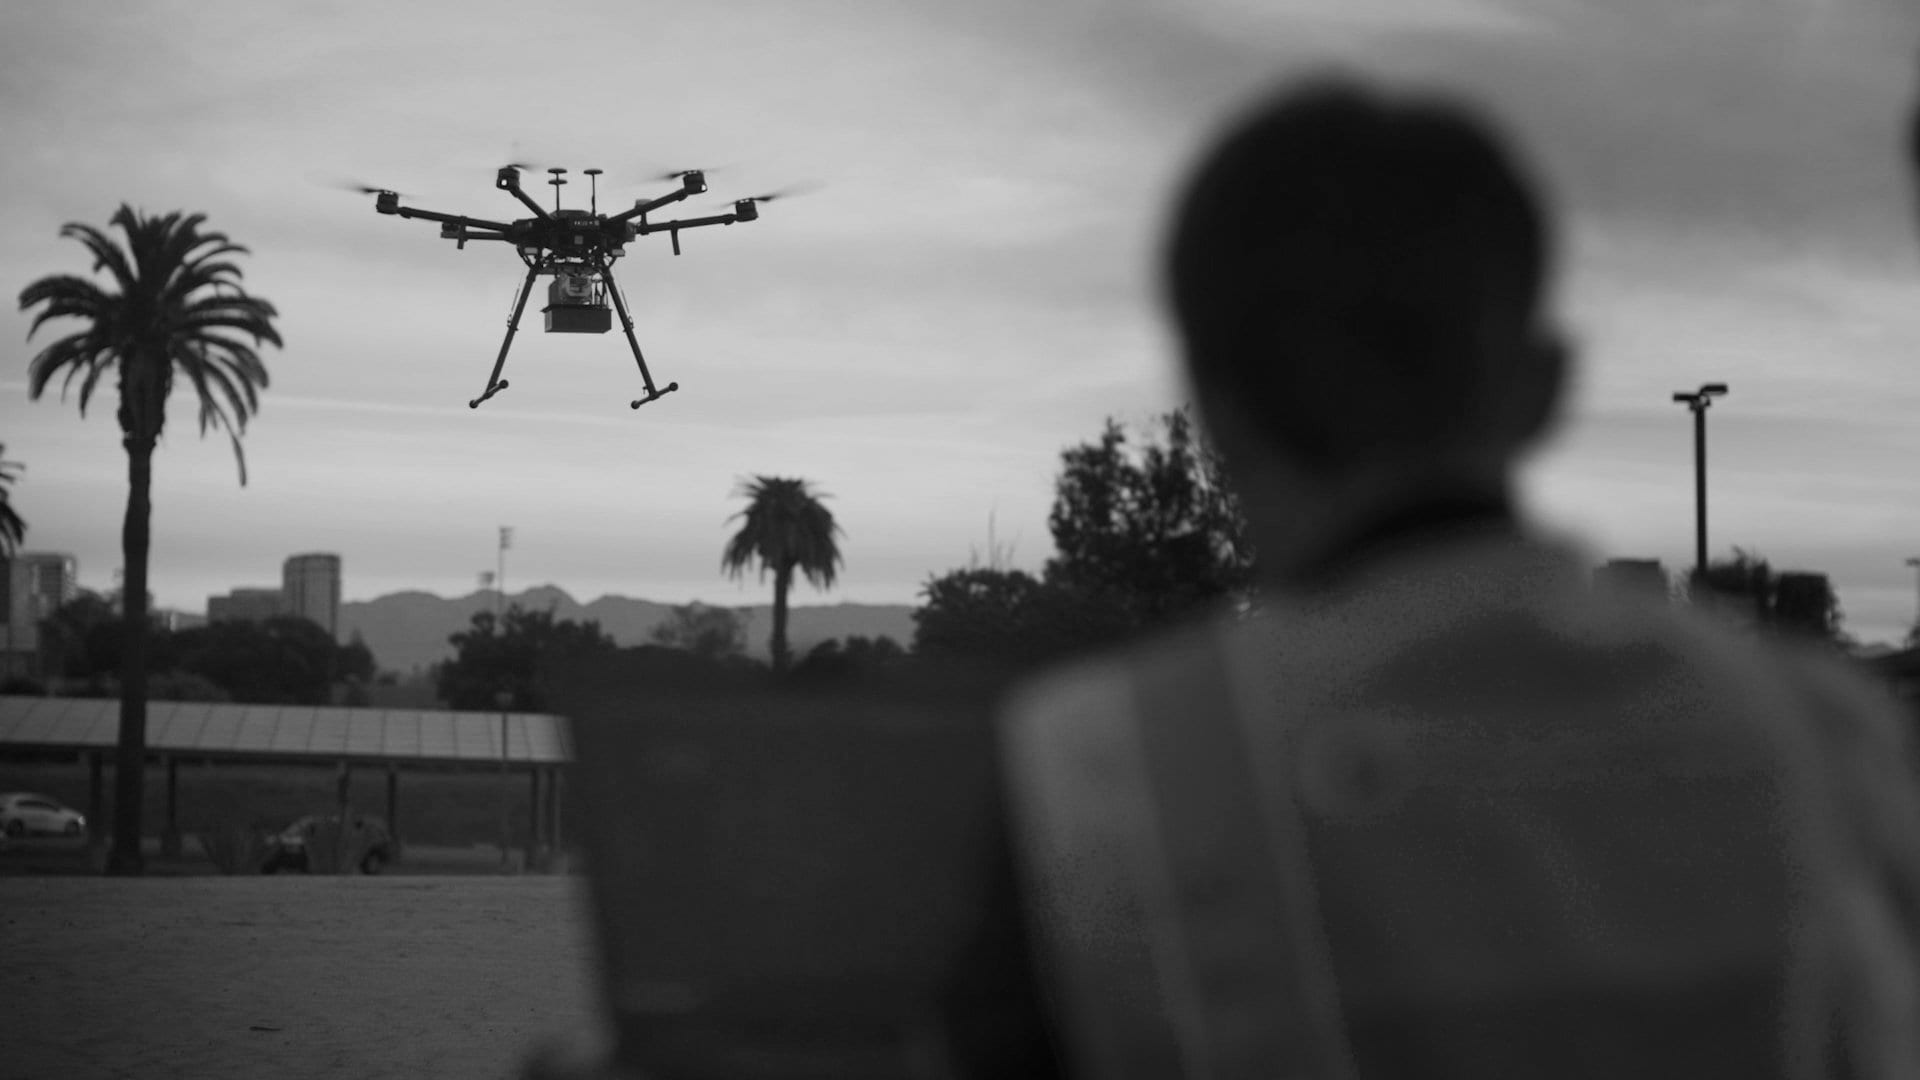 PrecisionHawk awarded patents for Unmanned Air Traffic Management (UTM)